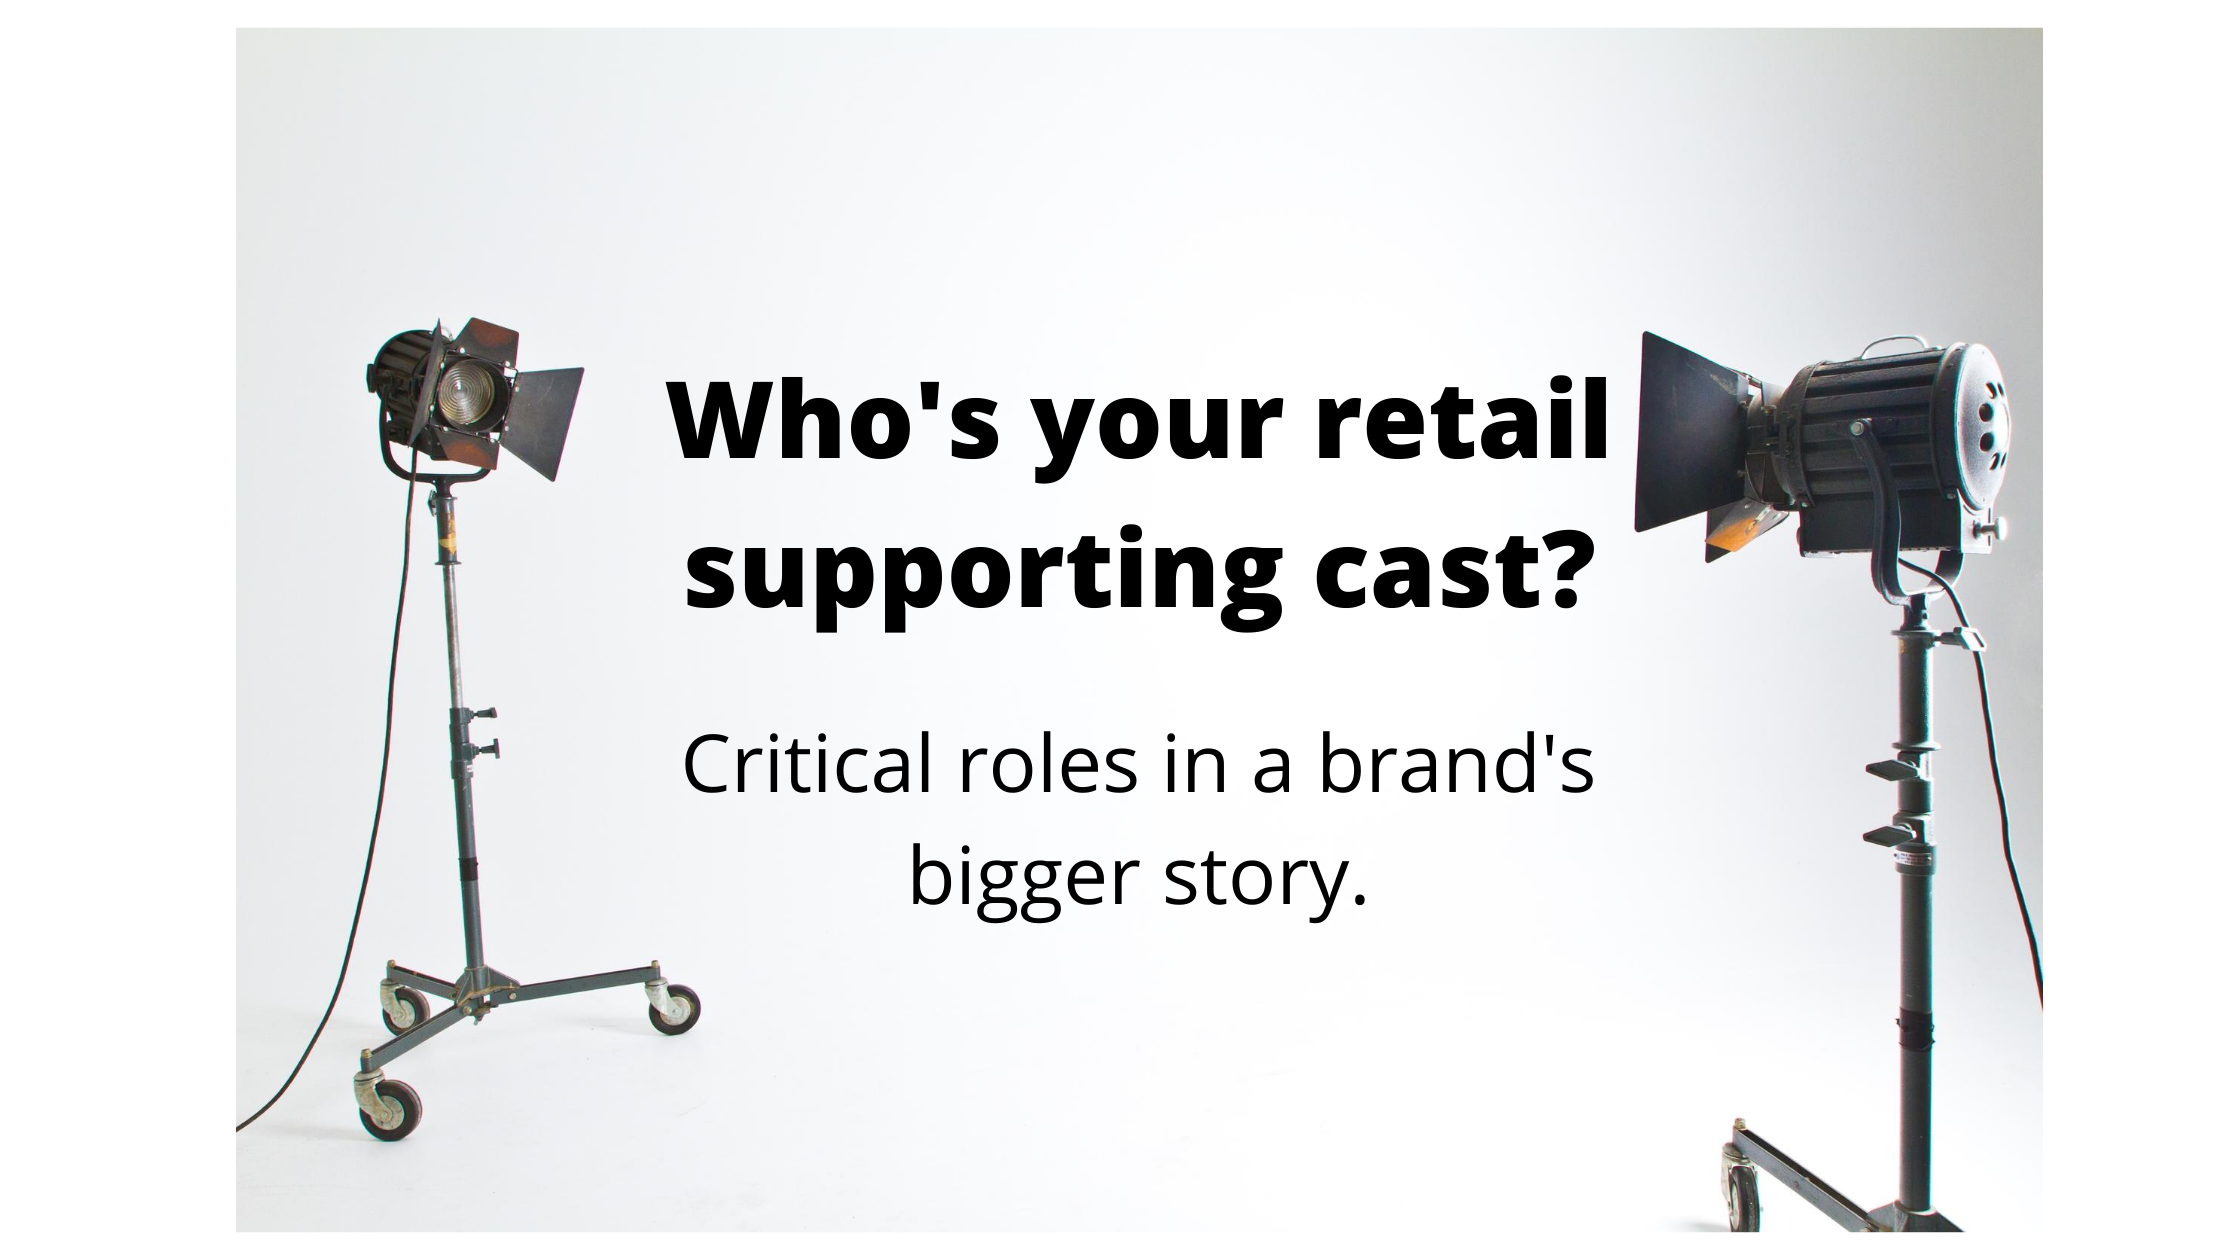 Who's your retail supporting cast?